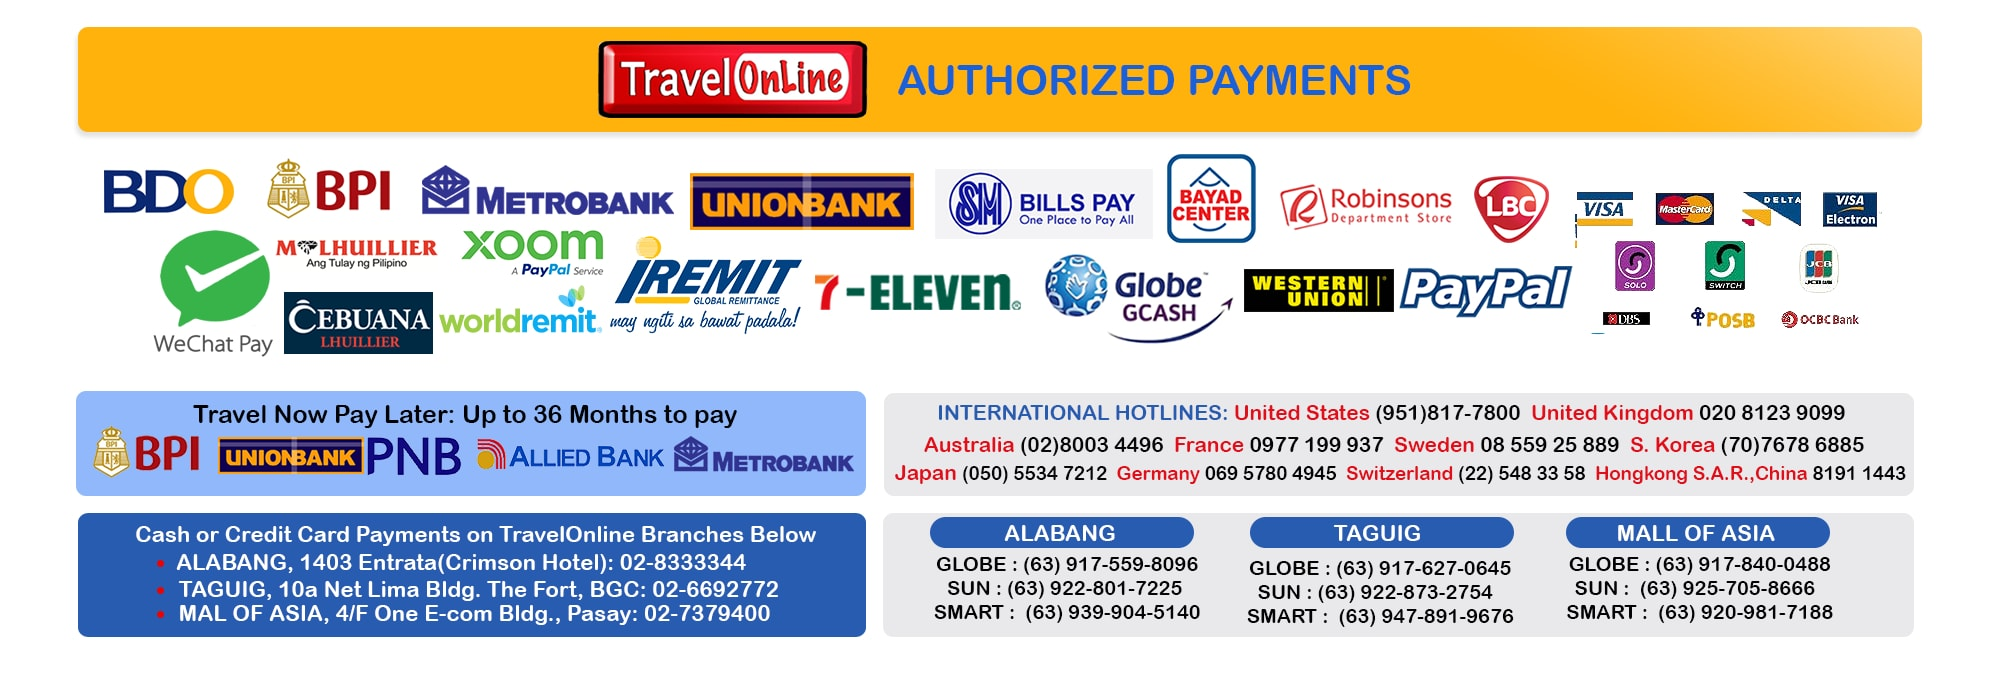 TravelOnline Philippines Travel Agency Contact Promos